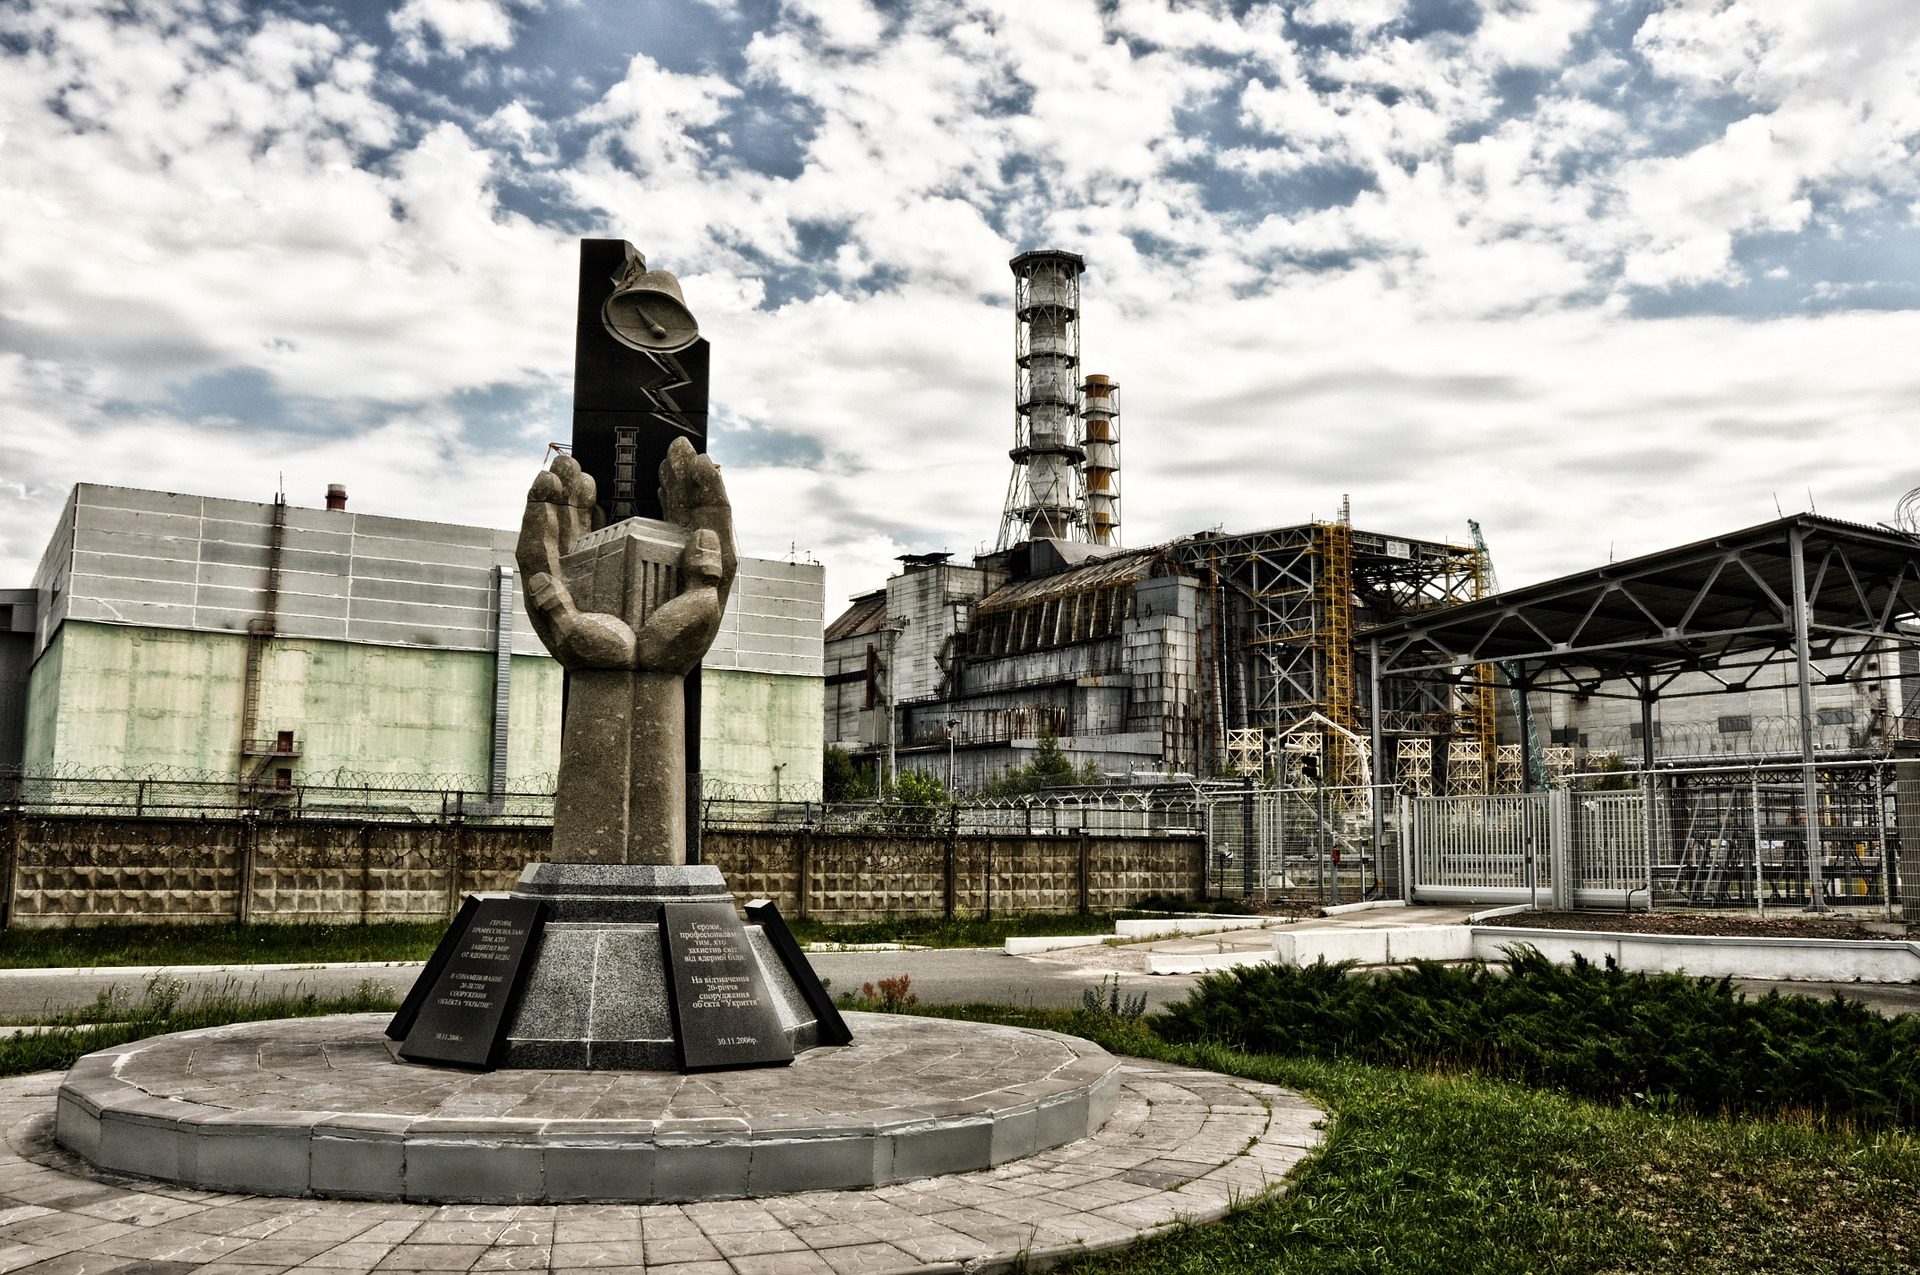 Life in Chernobyl has found a way forward